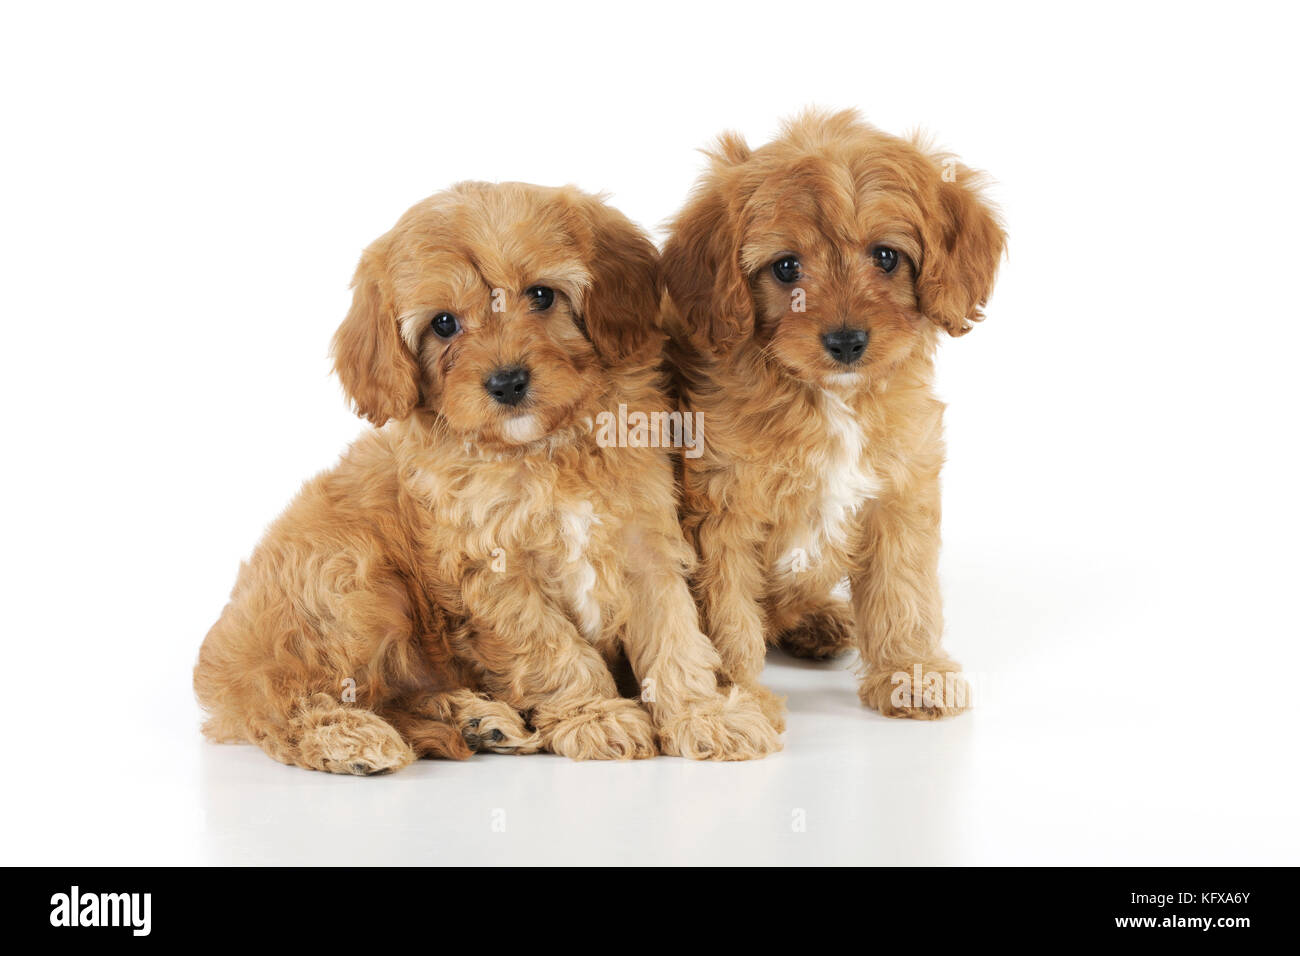 DOG. Cockerpoo puppies (Poodle X Cocker Spaniel ) 7 wks old Stock Photo